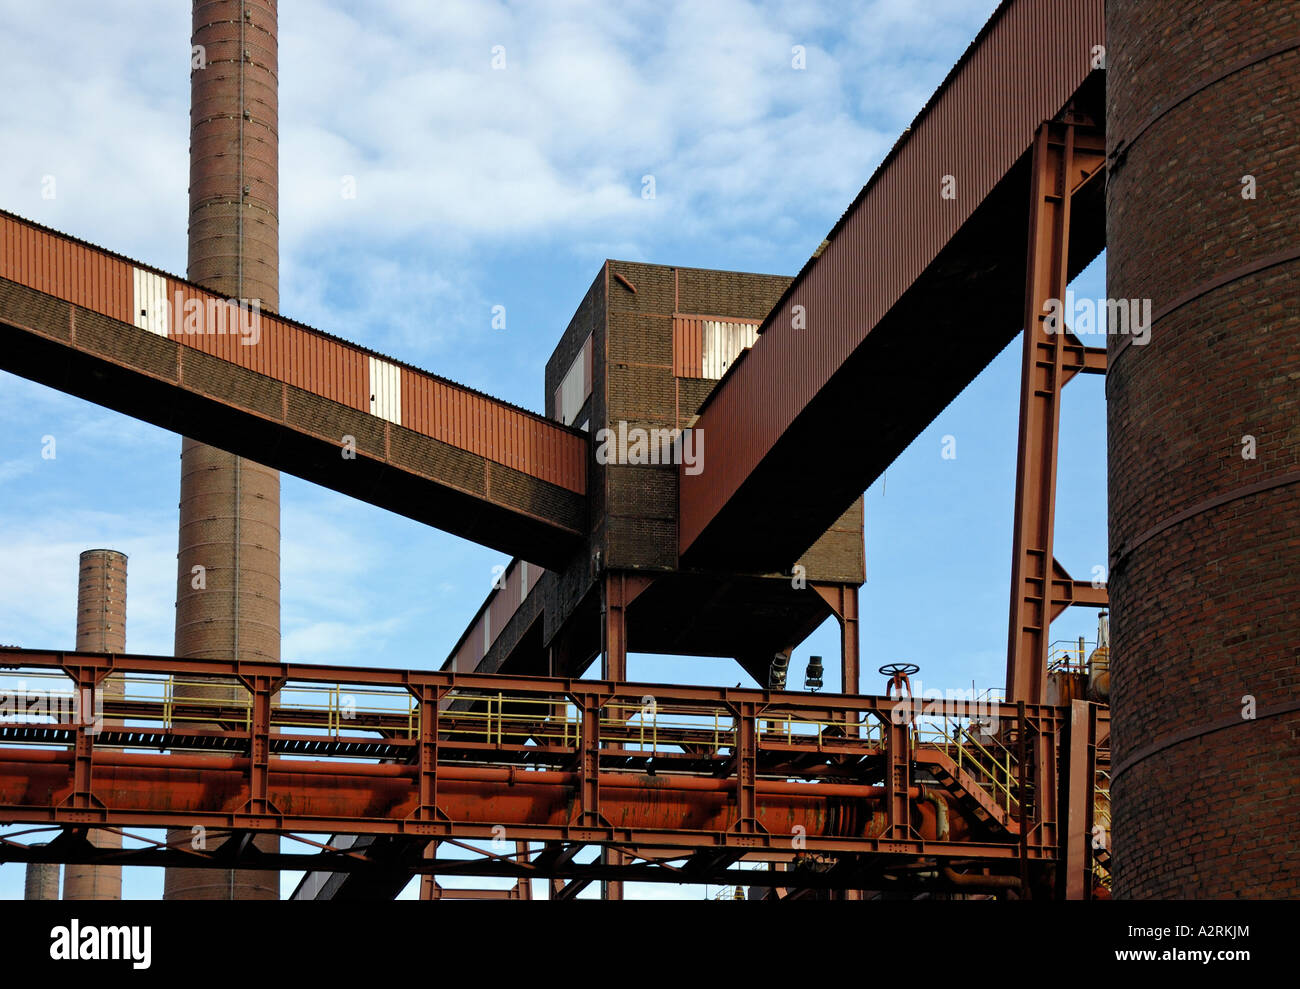 The coking plant at the Unesco world heritage site Zollverein, Essen, Germany. - Stock Image